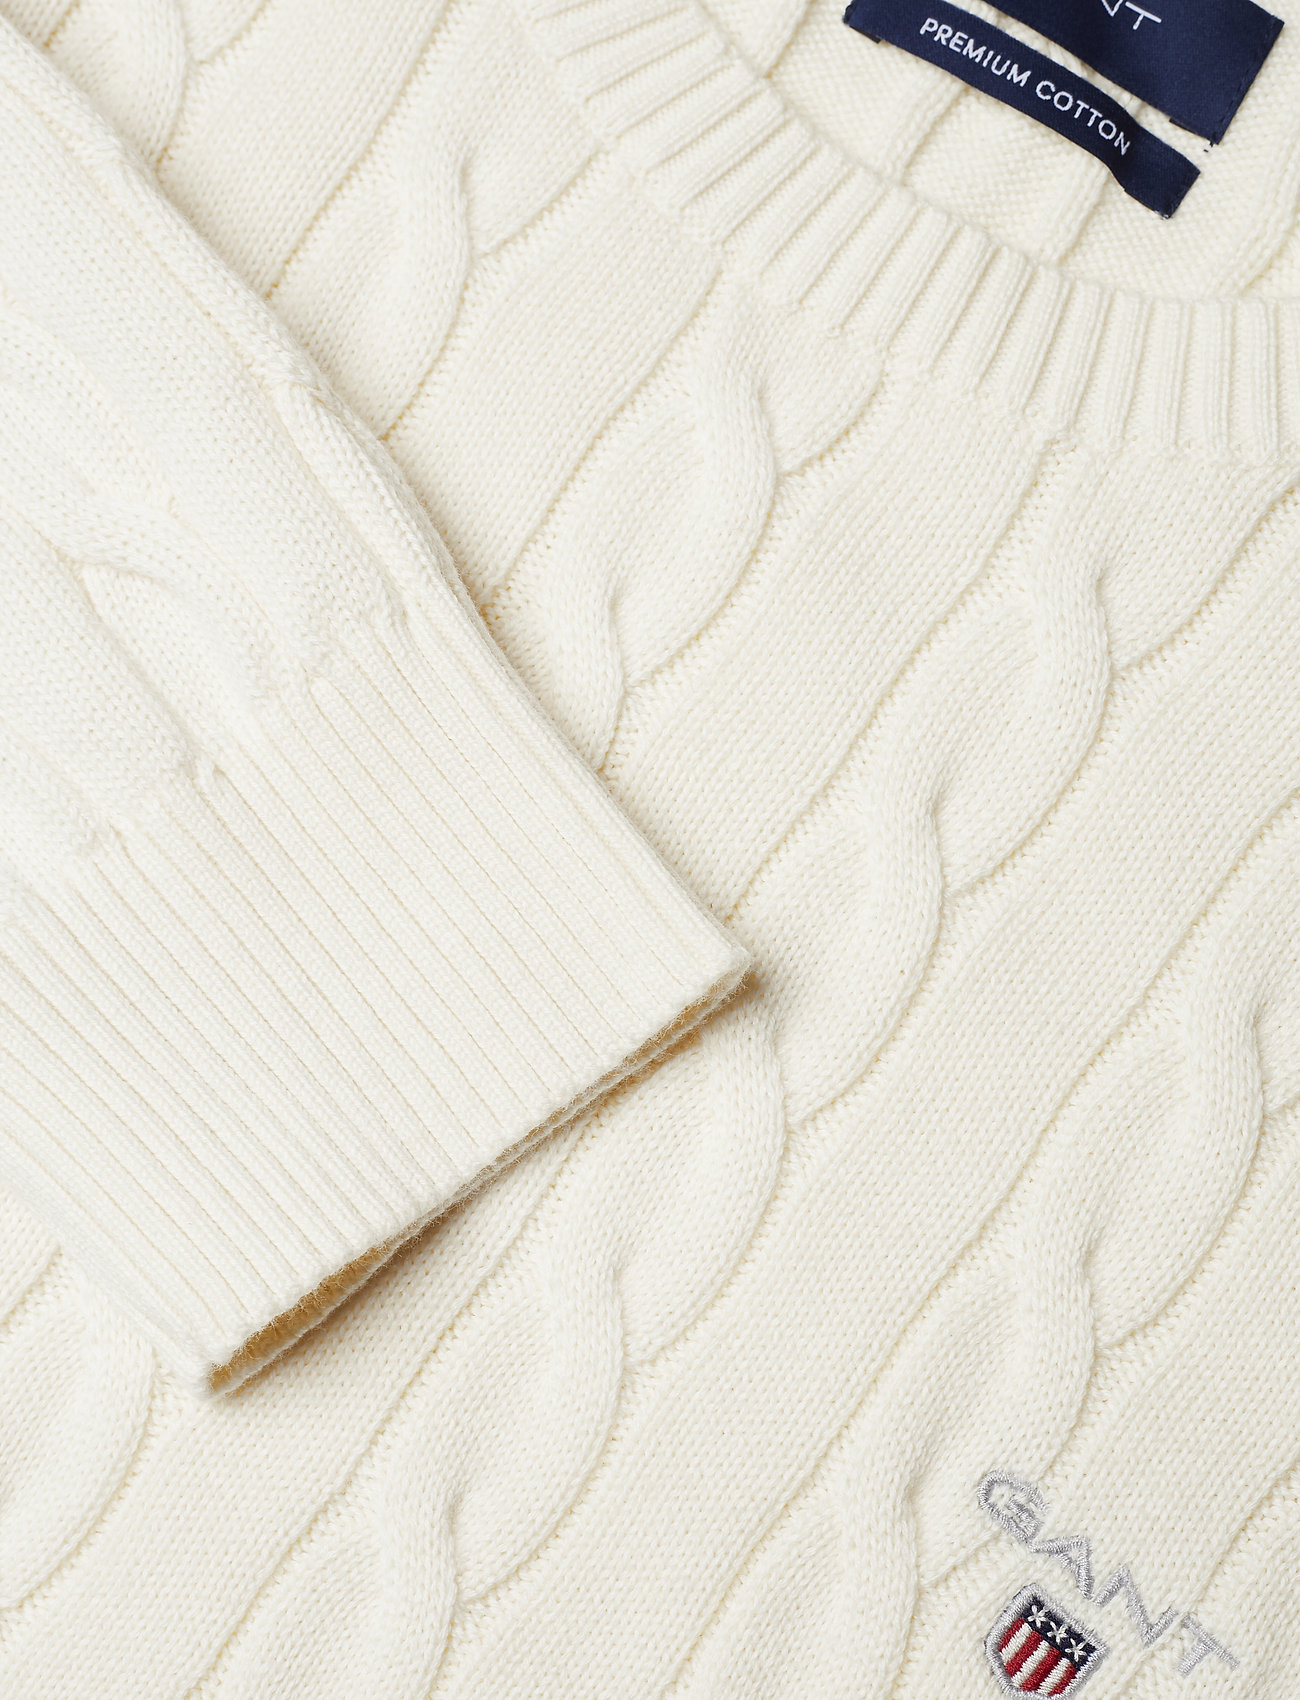 Cotton Cable Crew (Cream) (97.49 €) - GANT IqKNY